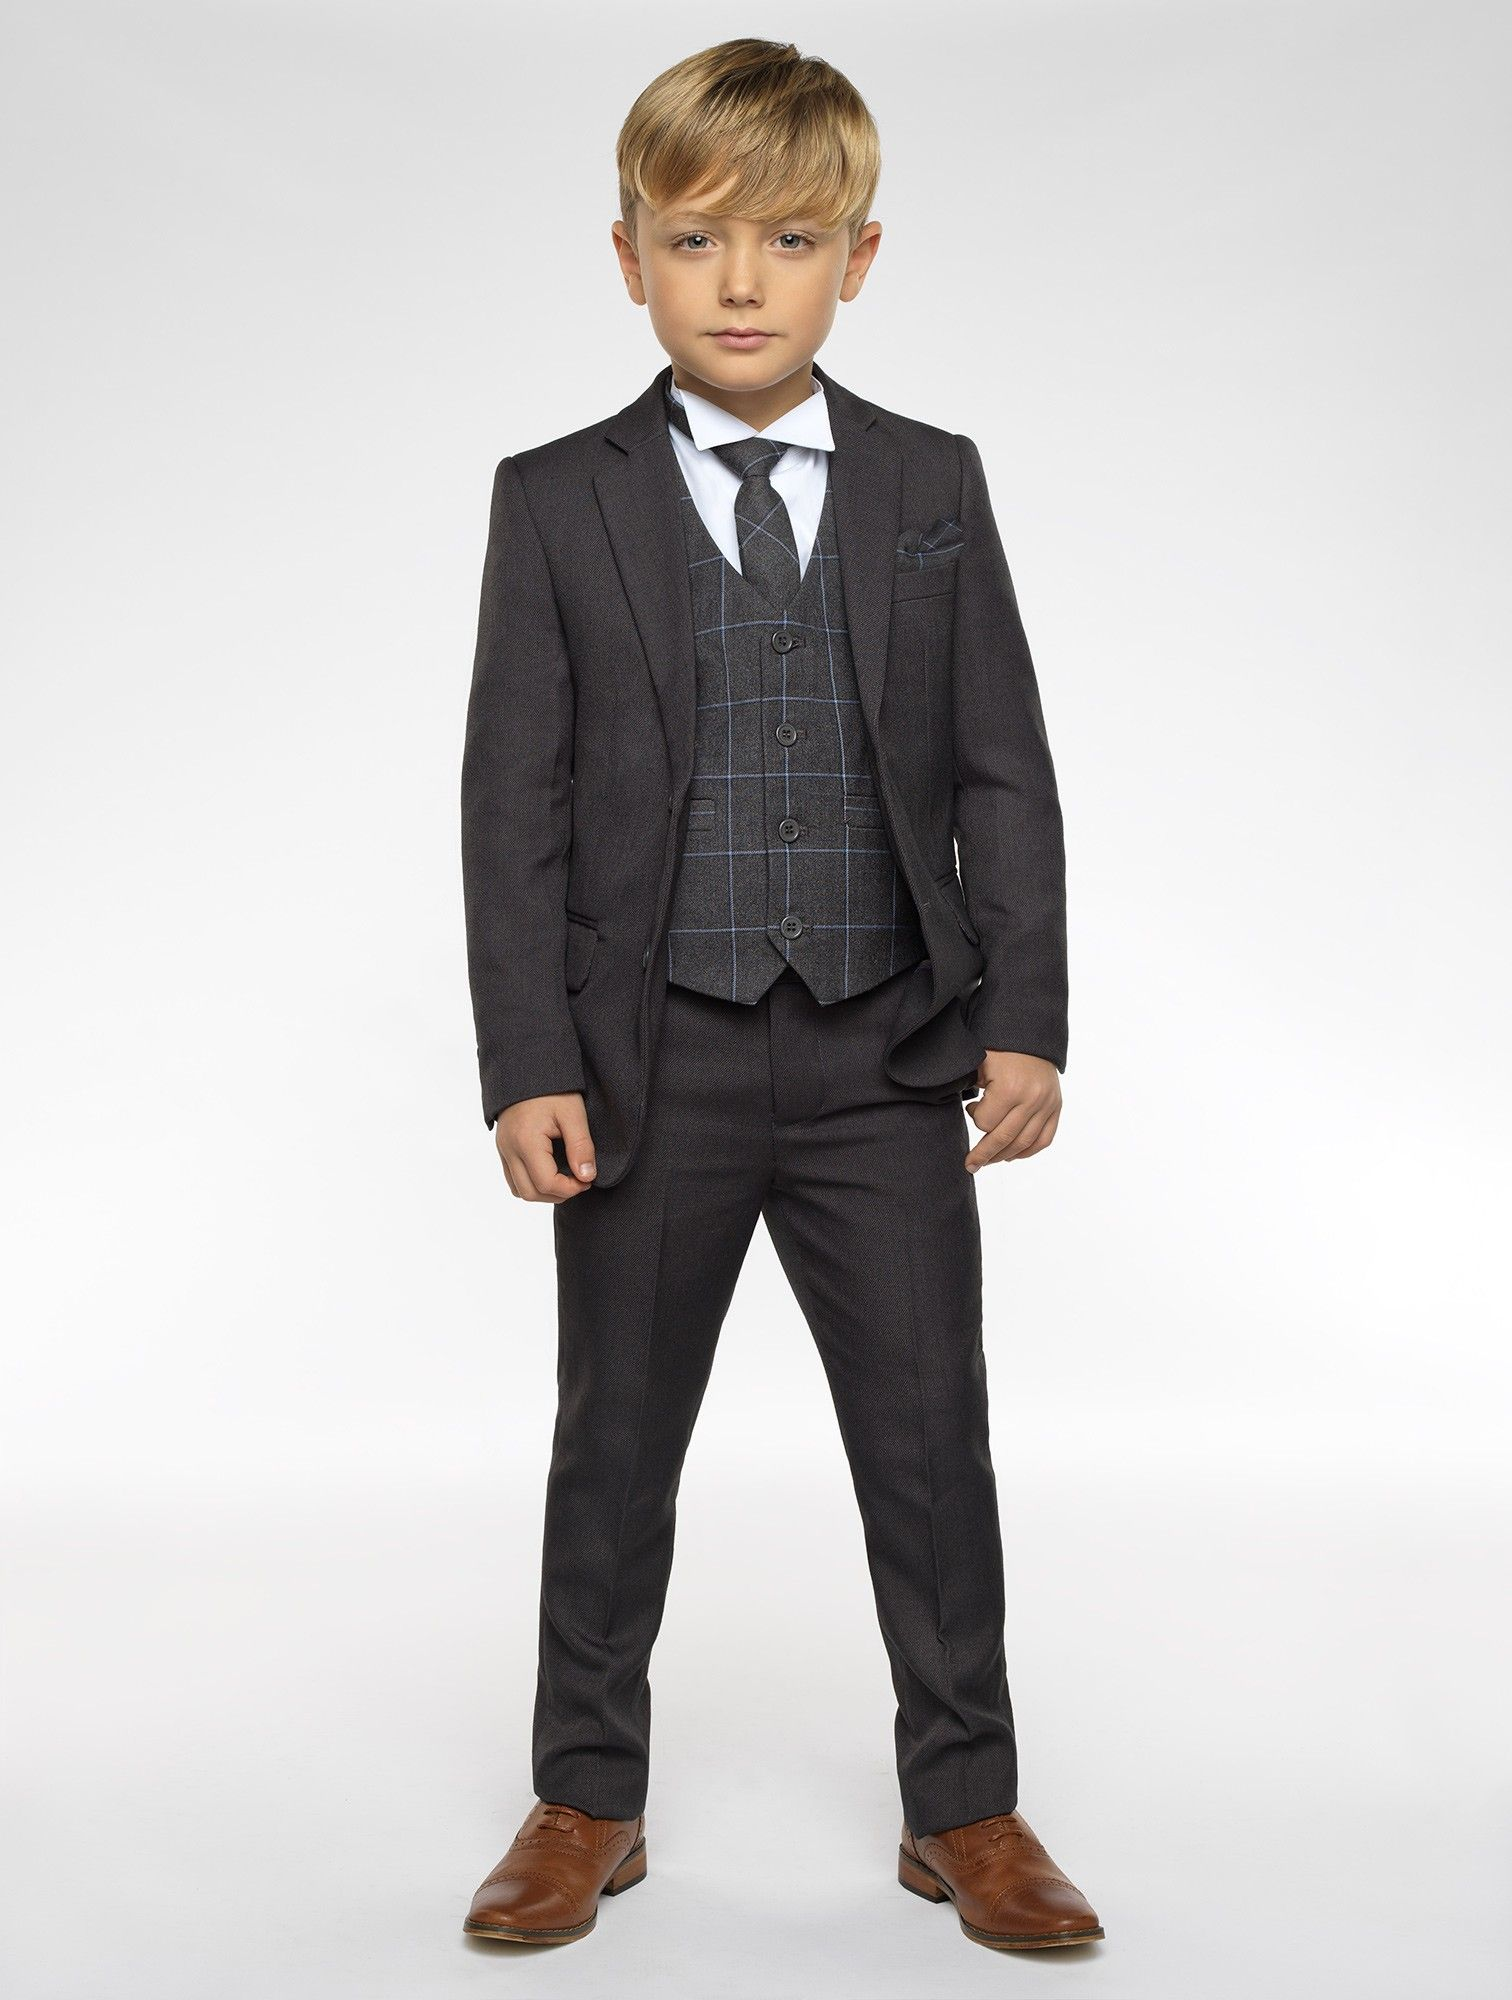 Boys Charcoal Grey Slim Fit 6 Piece Suit Kids Prom Wedding Pageboy Suits 1 to 15